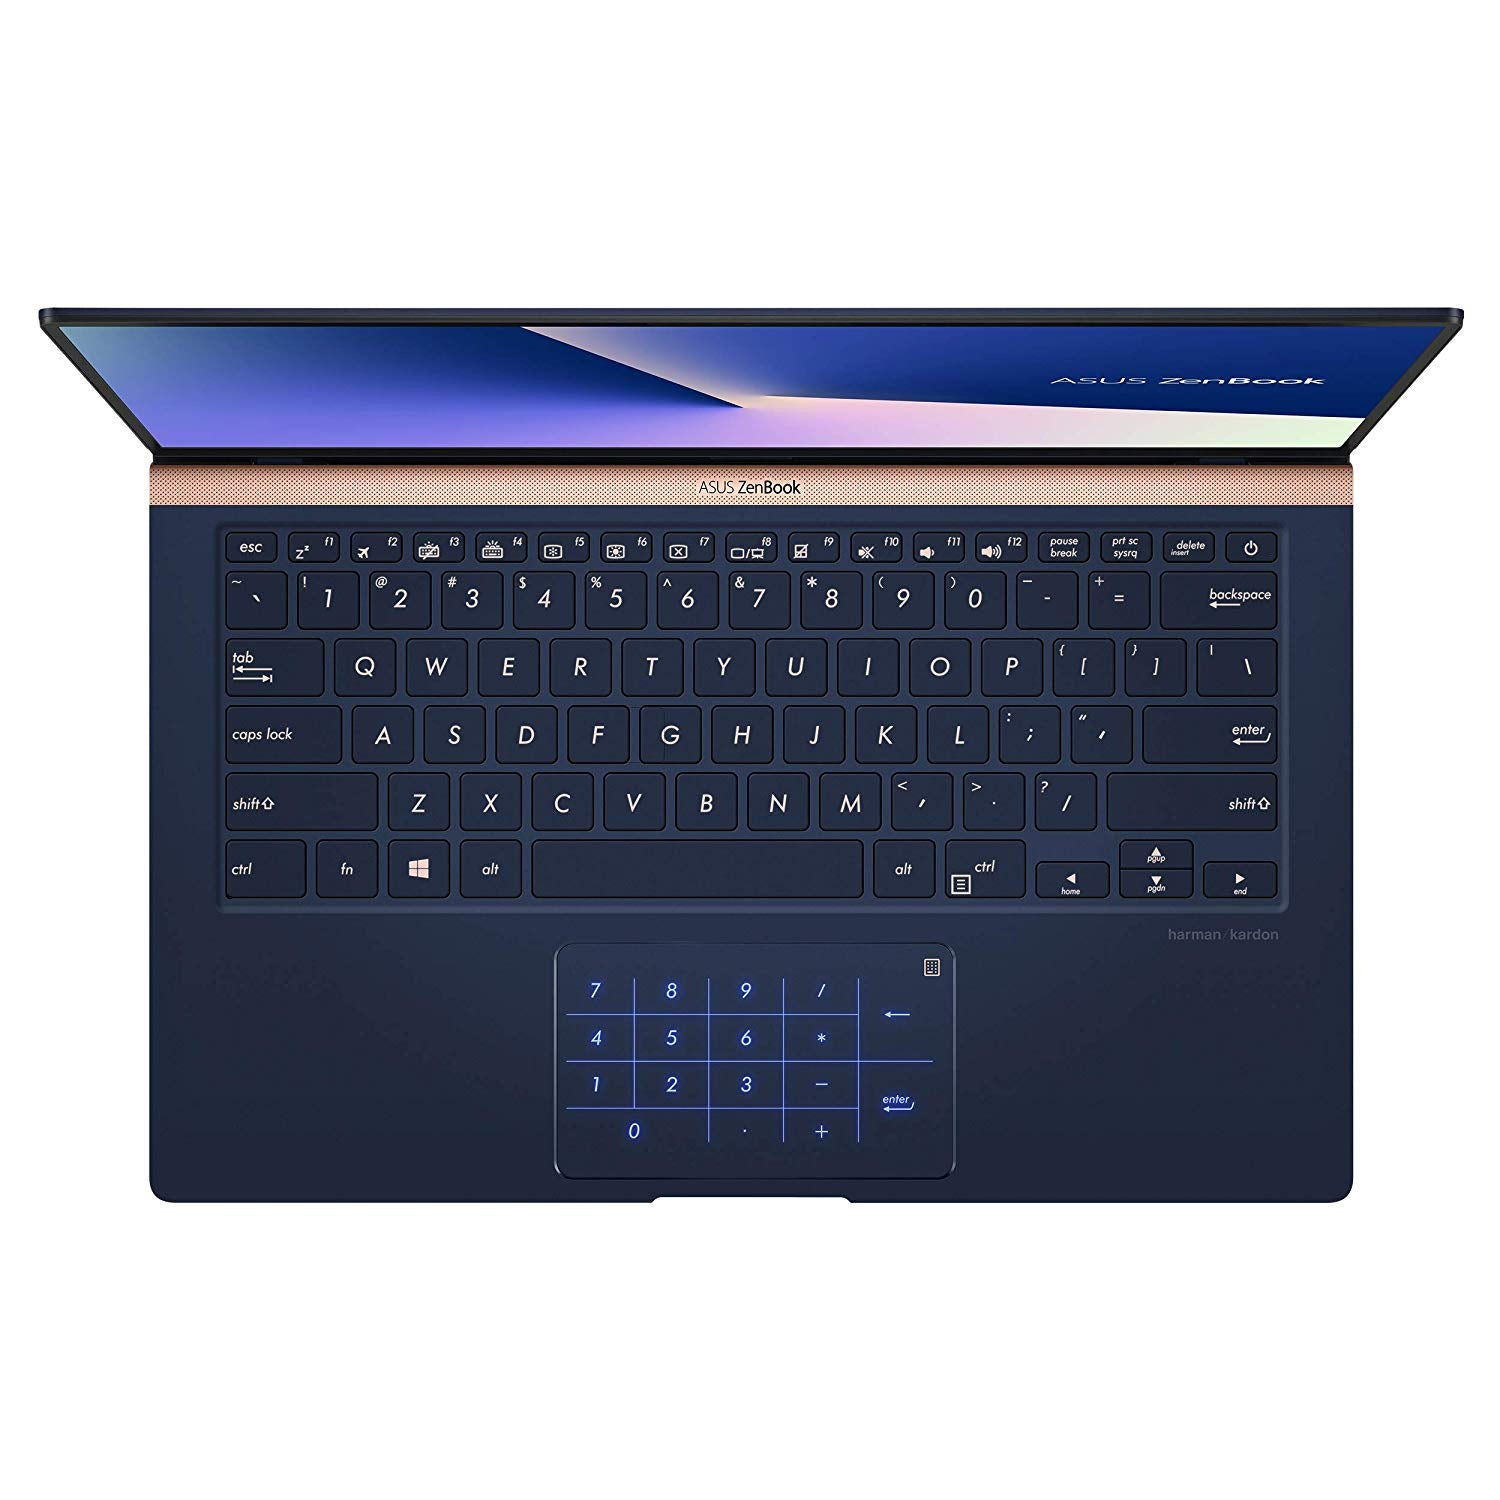 "ASUS ZenBook 14 Ultra-Slim Laptop 14"" Full HD 4-Way NanoEdge Bezel, 8th-Gen Intel Core i7-8565U Processor, 16GB LPDDR3, 512GB PCIe SSD, MX150, Numberpad, Windows 10 - UX433FN-IH74, Royal Blue"